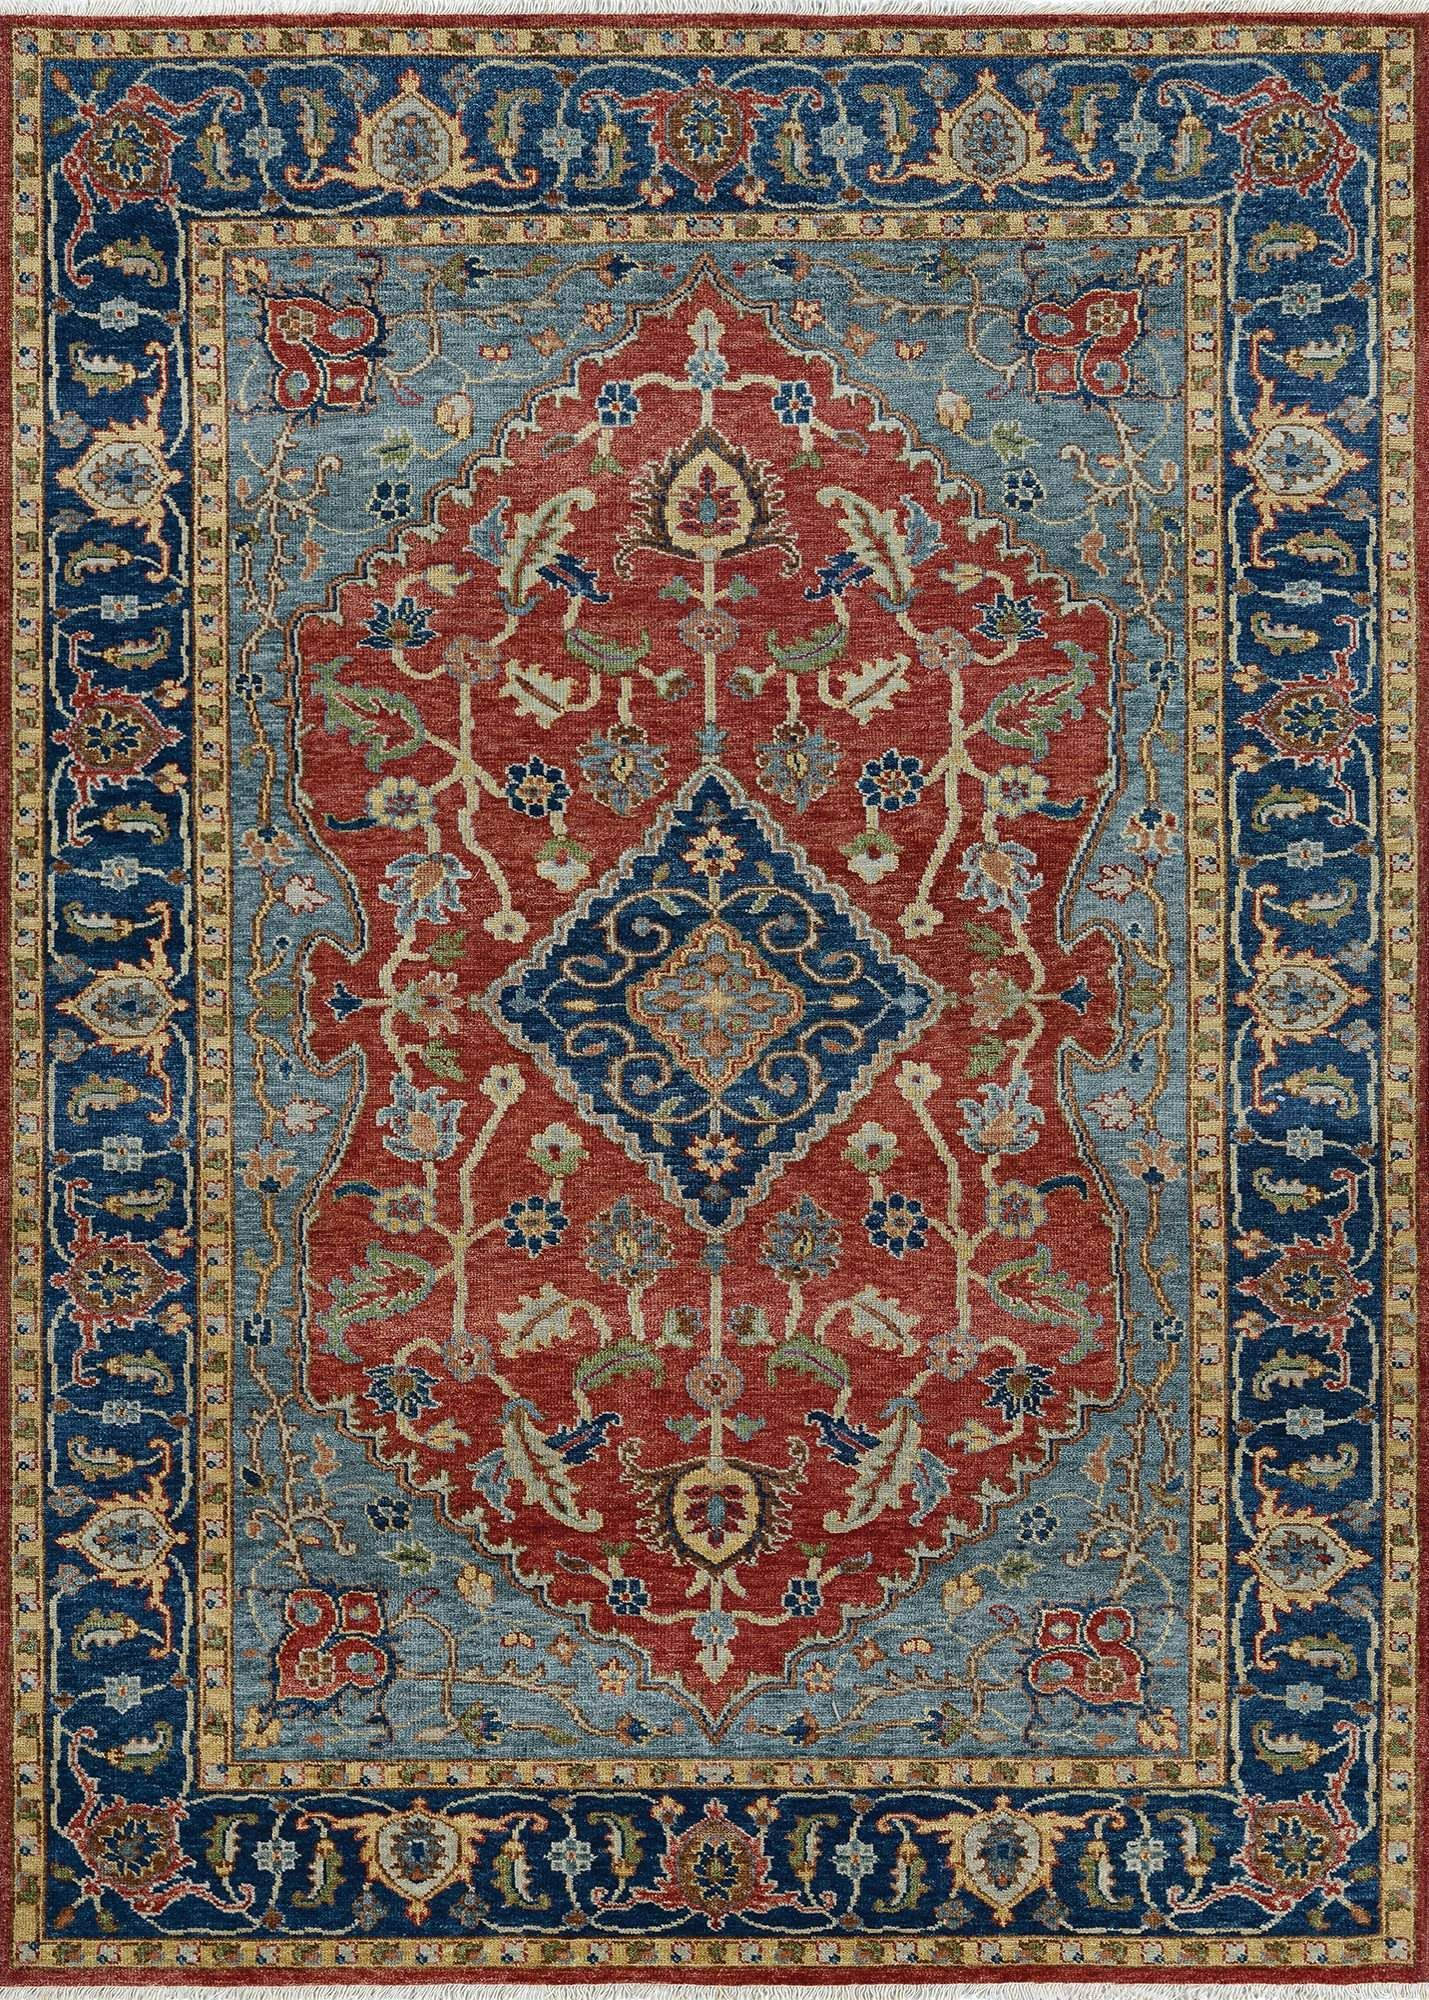 Traditional Area Rug Designs Take New Meaning In Couristans Latest Creation For The Floor With Tenali Collection Exquisitely Hand Knotted India